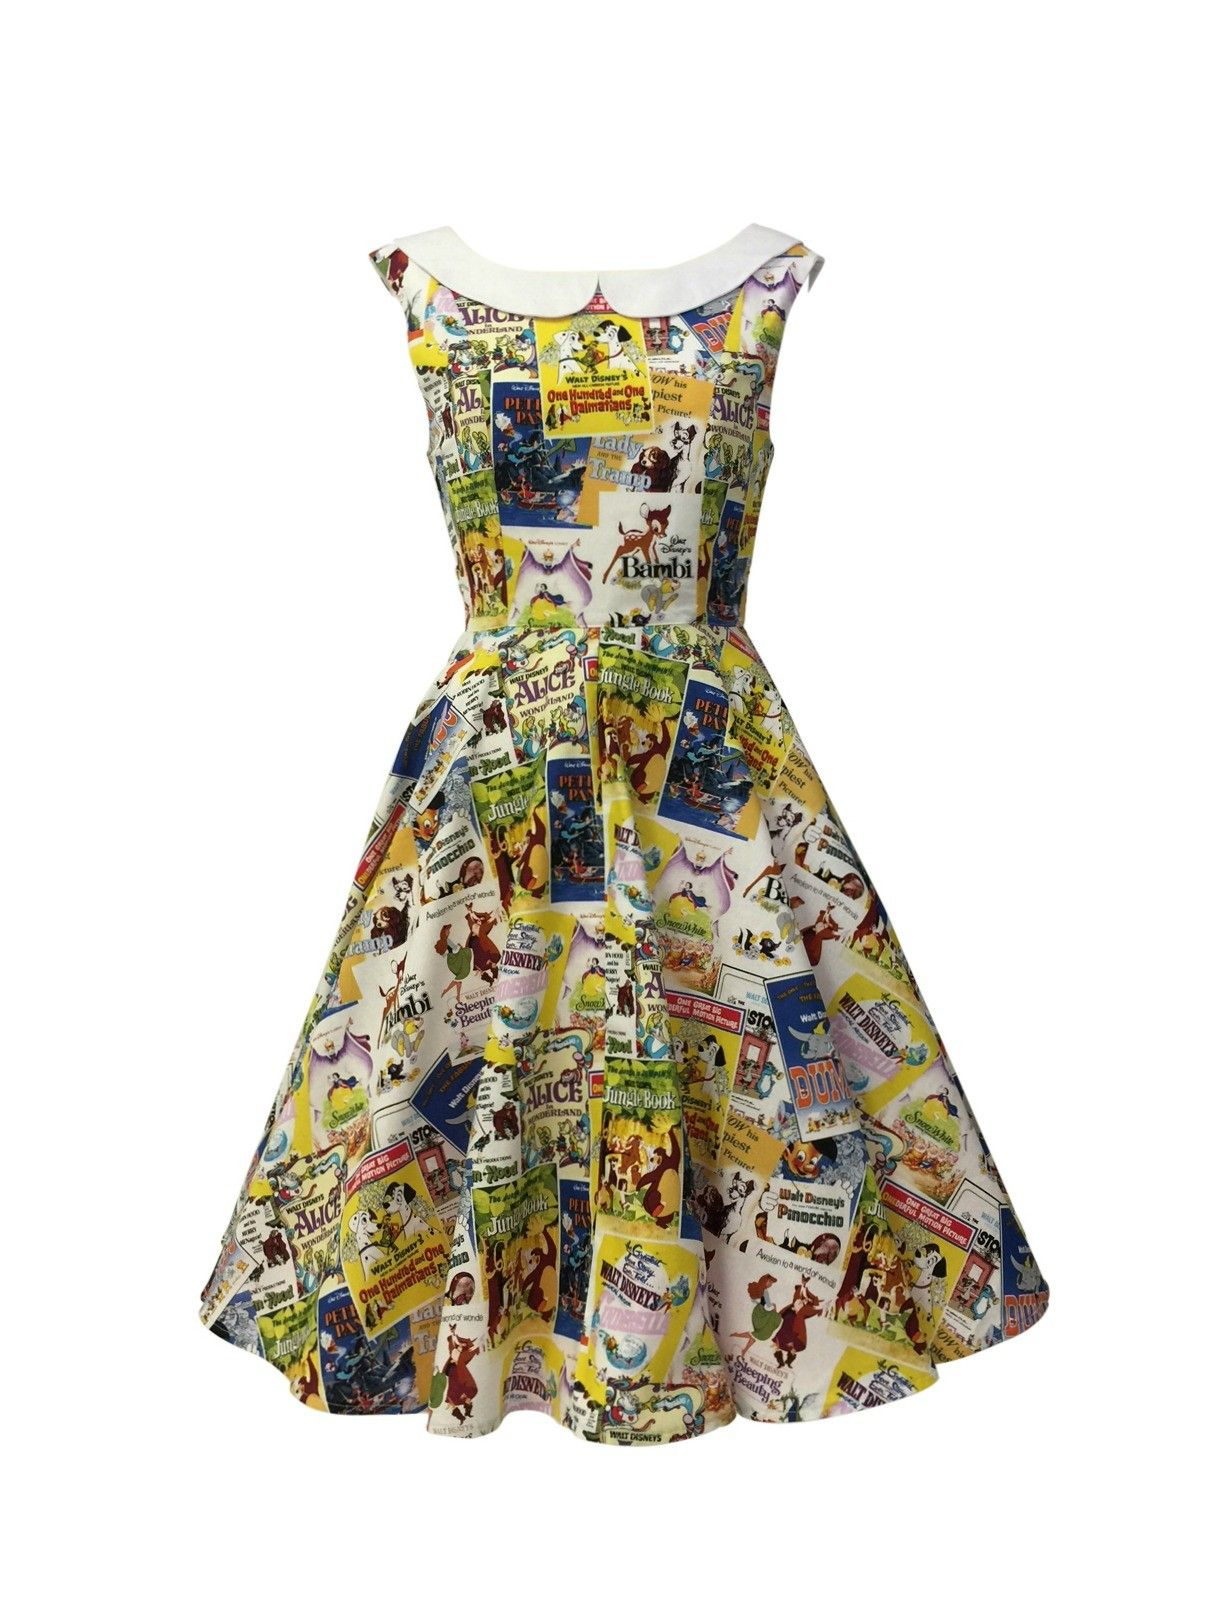 69453b22cb  3 Disney movie poster print dress! An amazing Disney print featuring all  your favorite movies